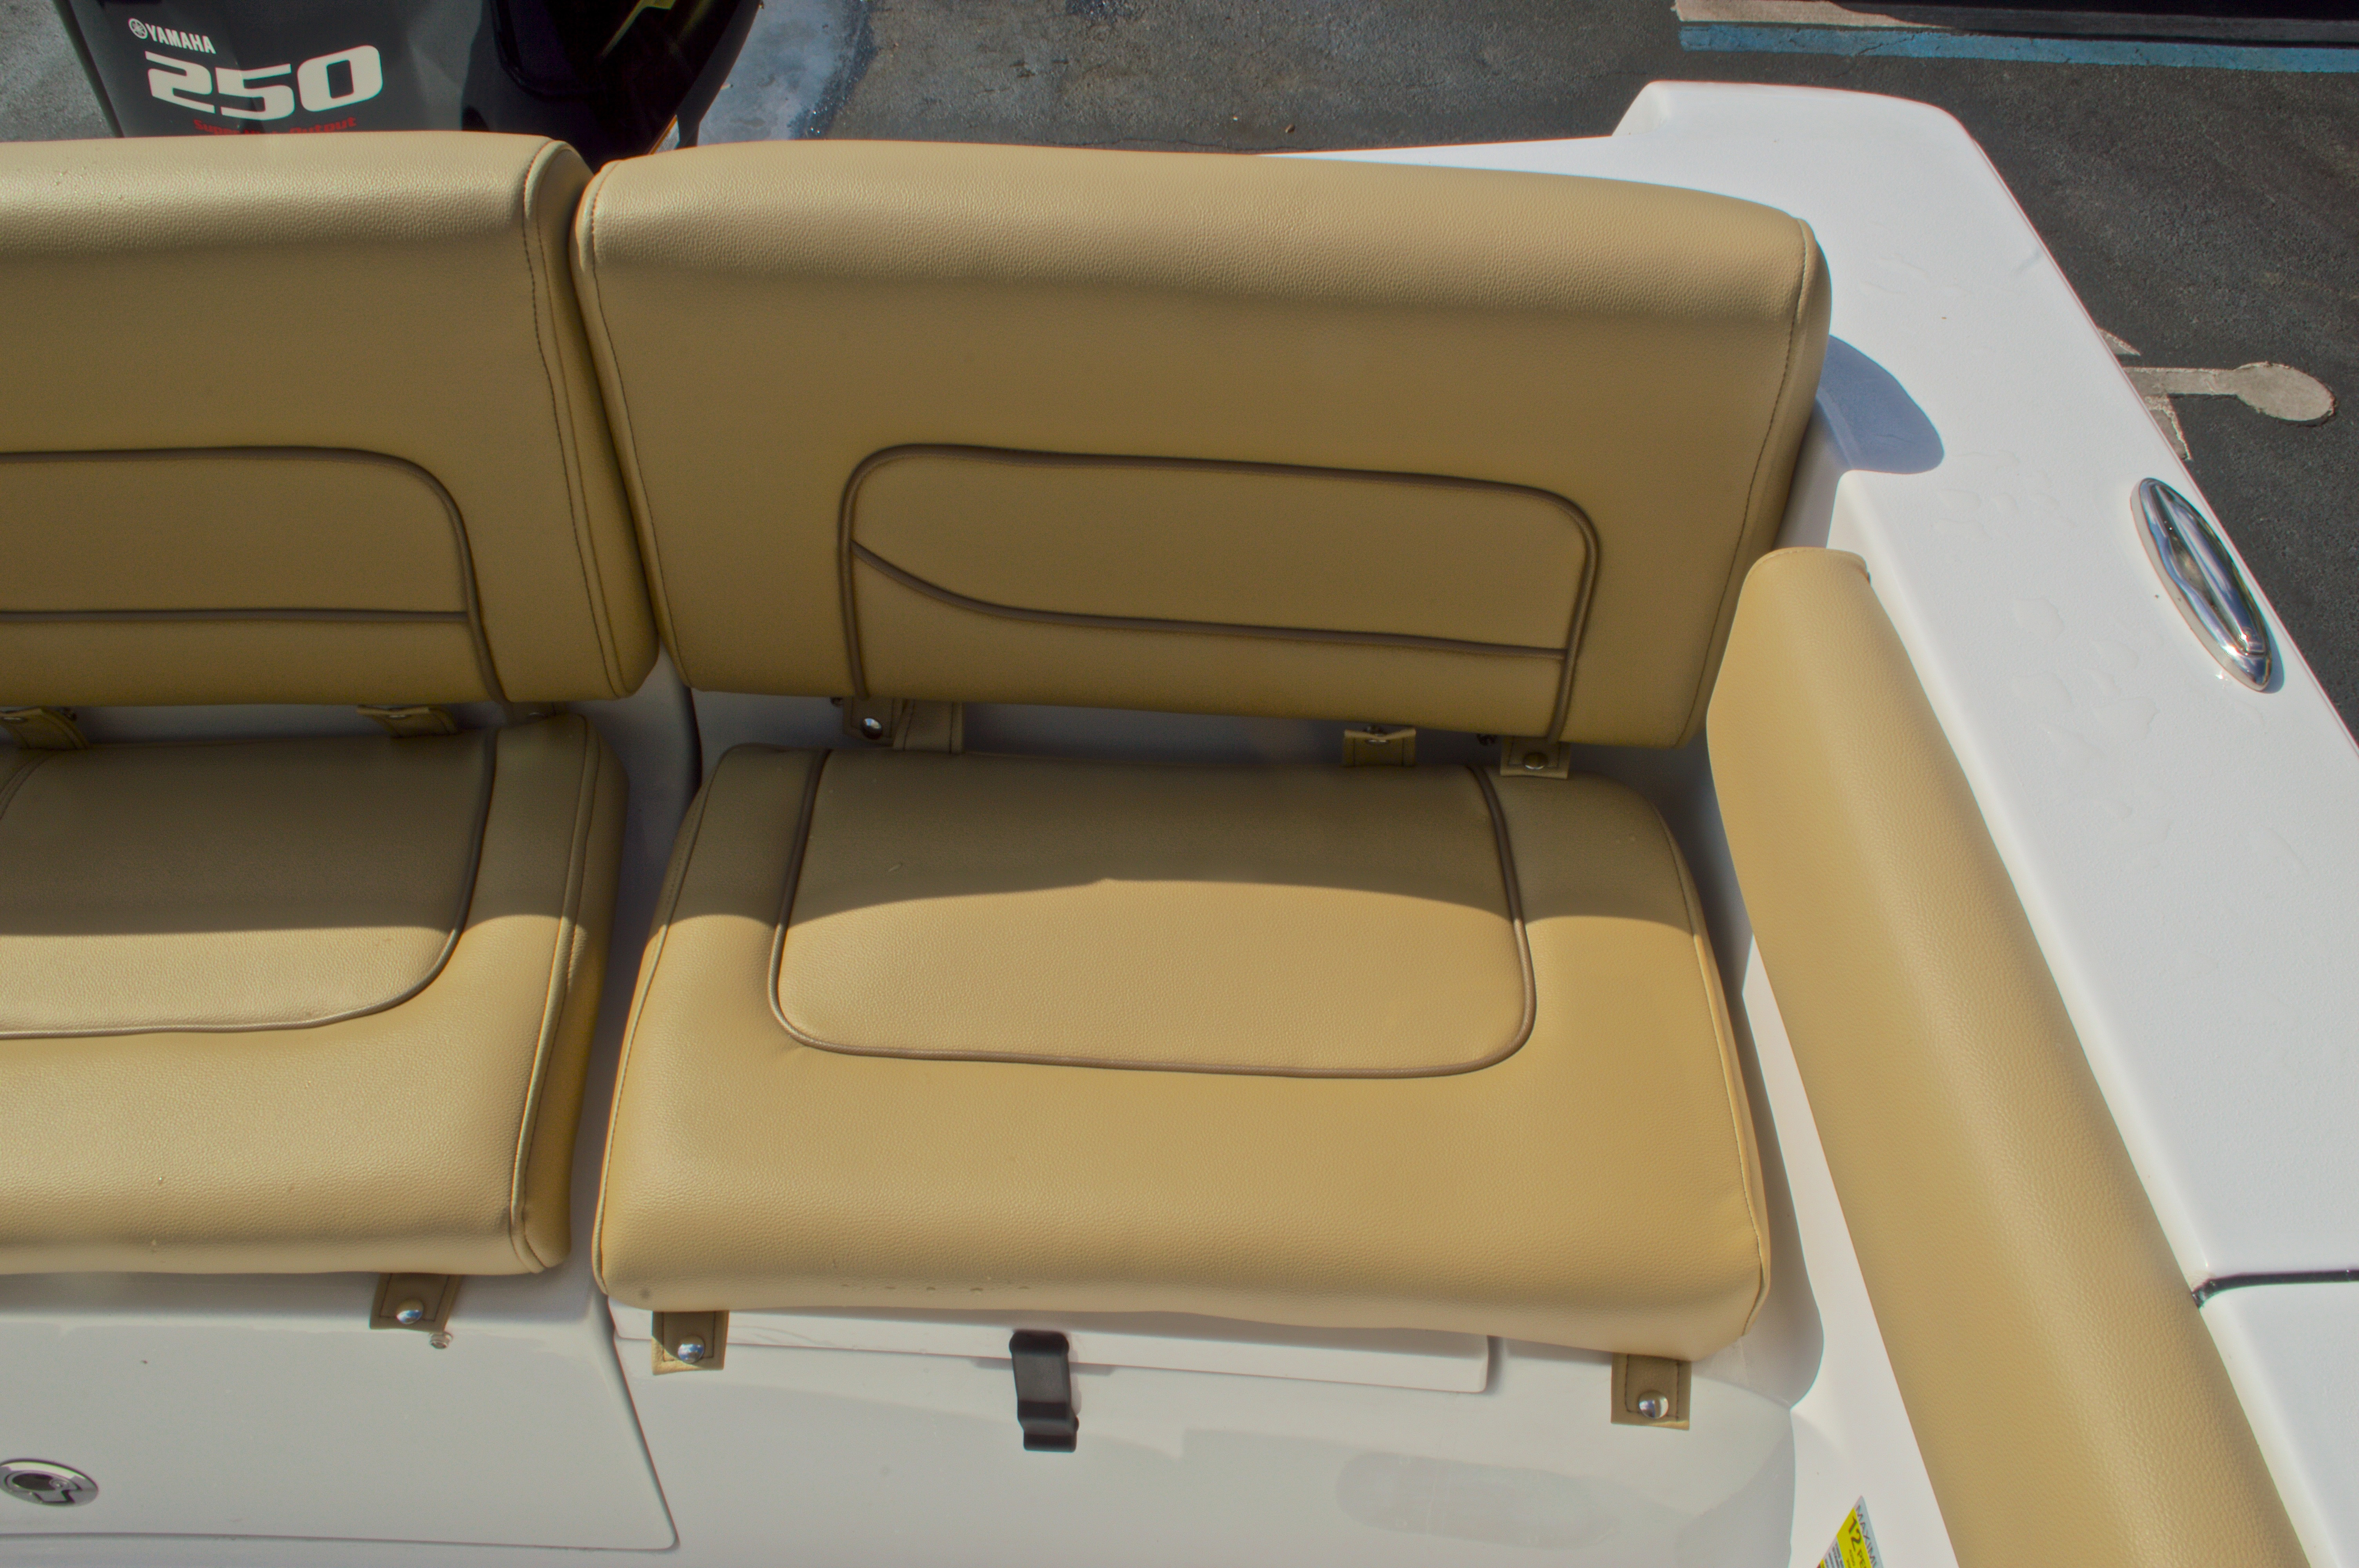 Thumbnail 15 for New 2016 Sportsman Heritage 231 Center Console boat for sale in Vero Beach, FL